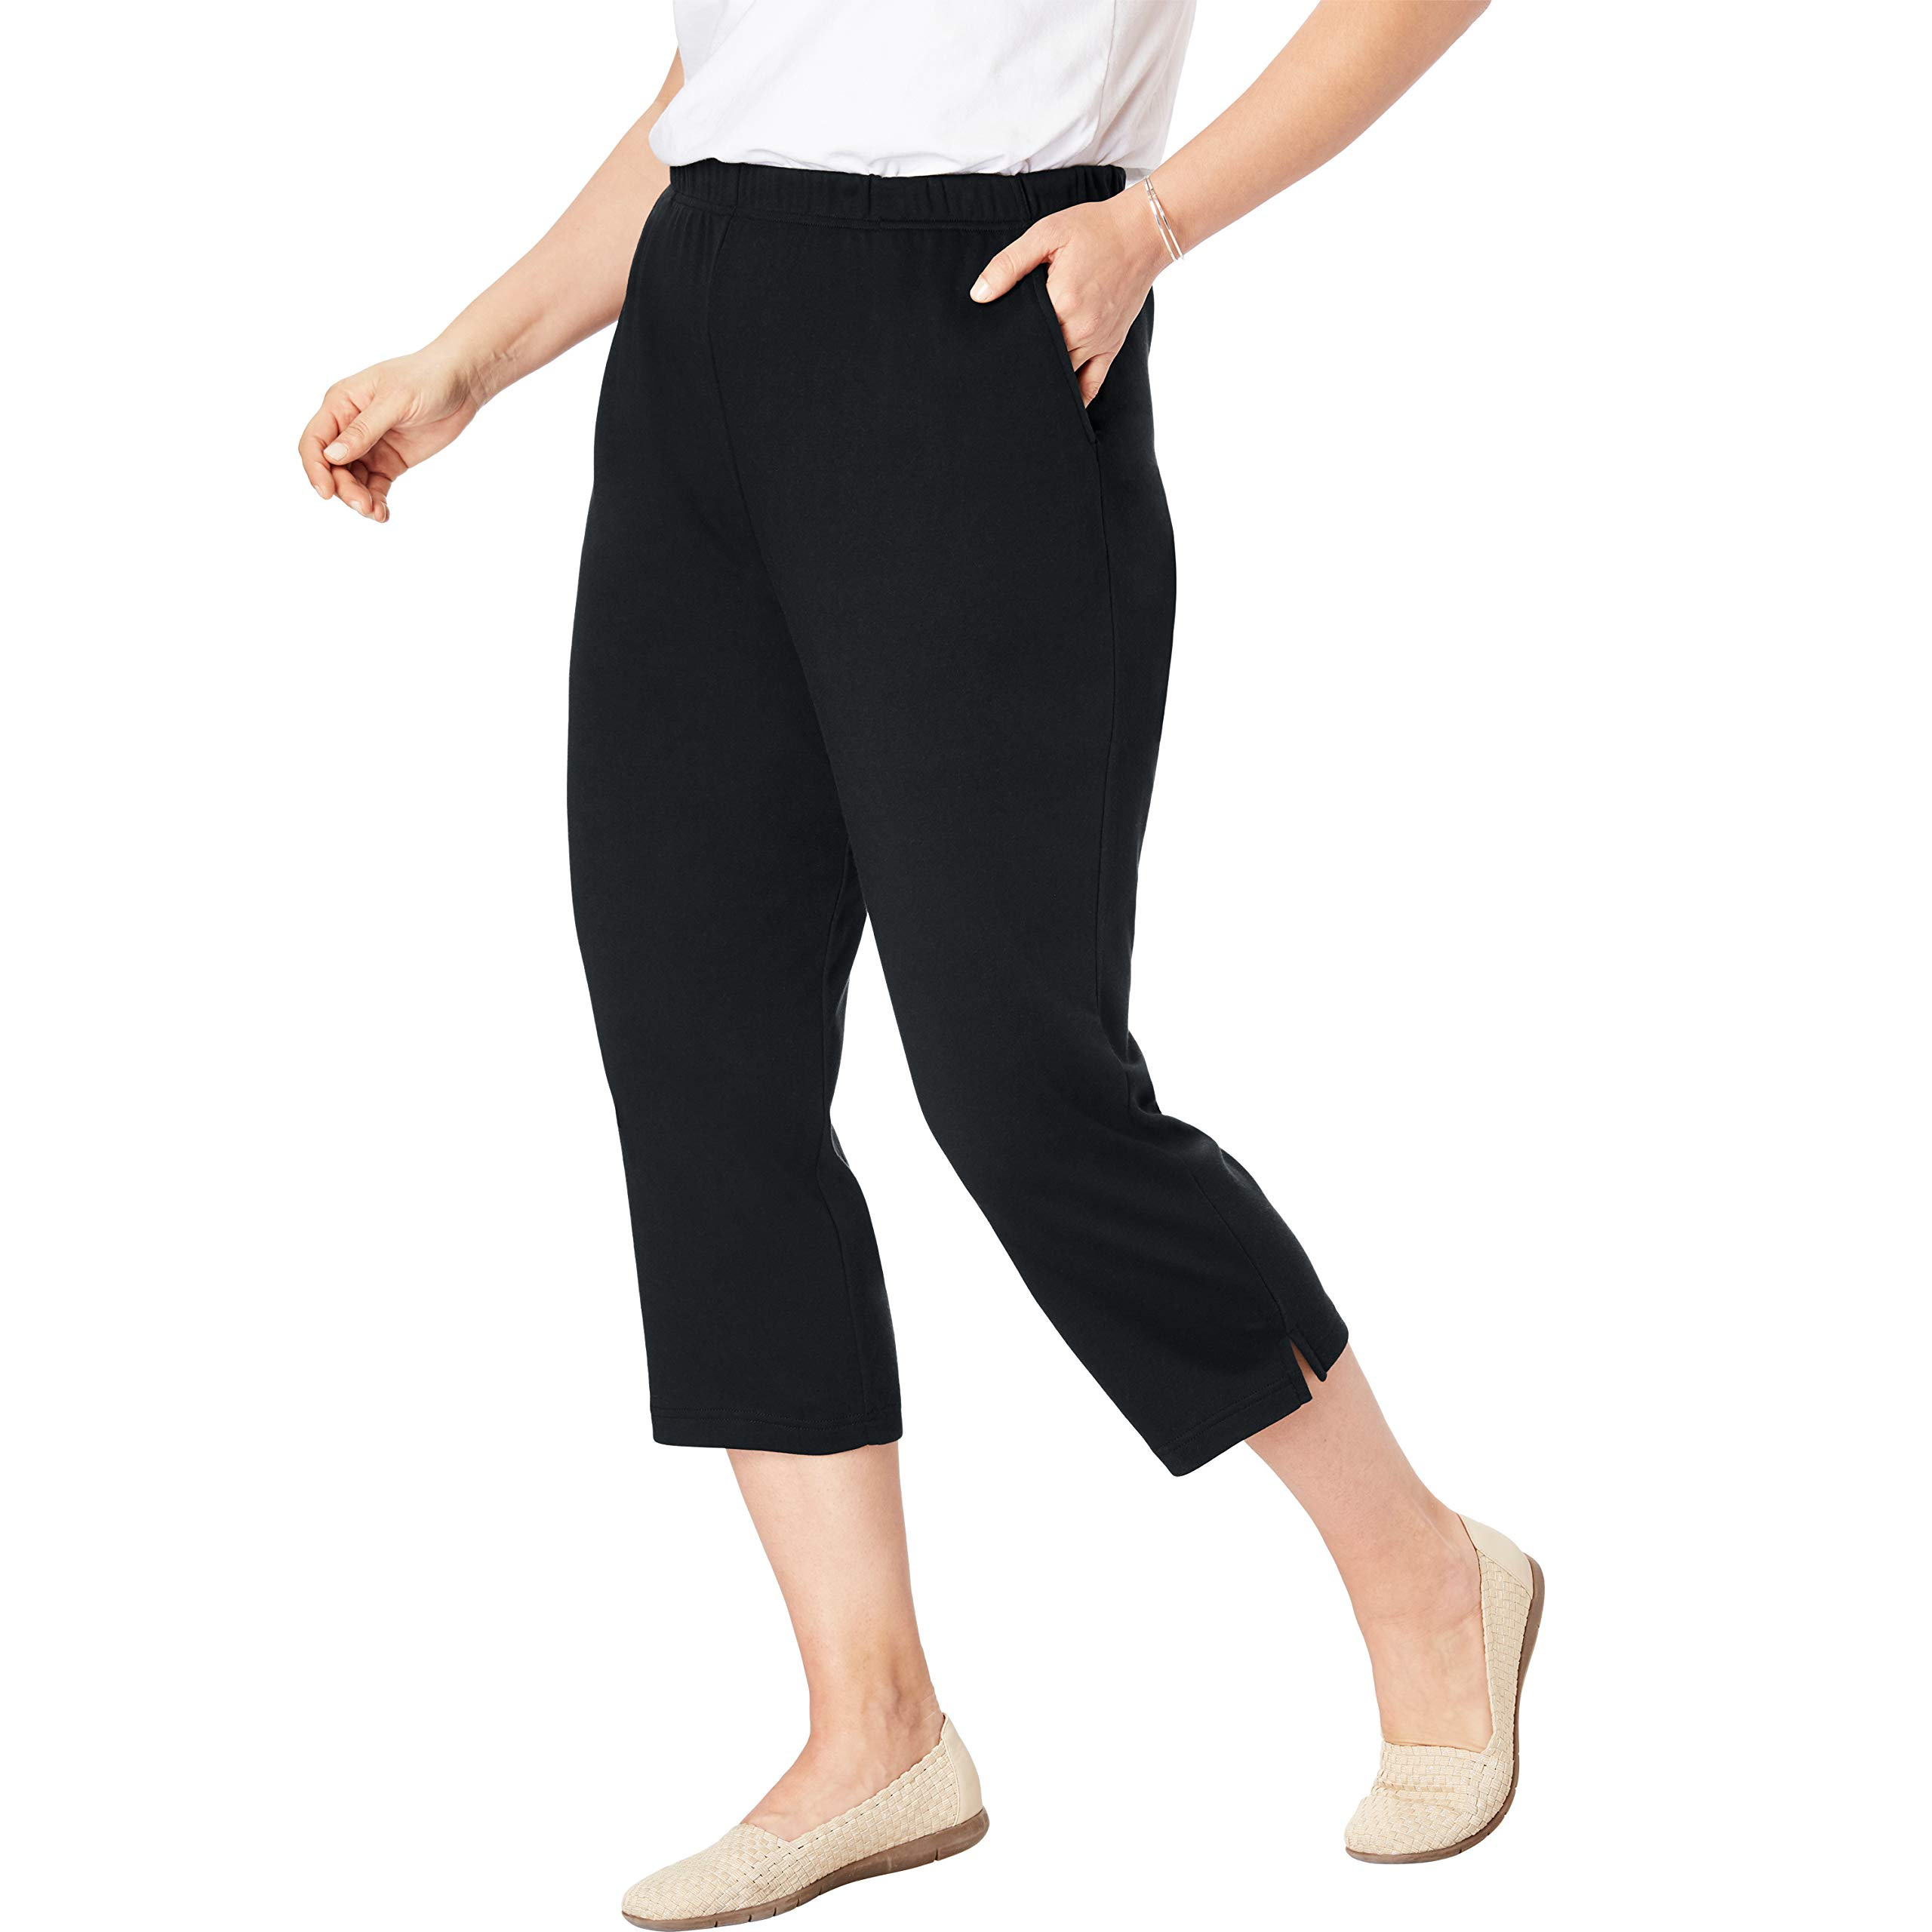 Woman Within Women's Plus Size Petite 7-Day Knit Capri - Black, 3X by Woman Within